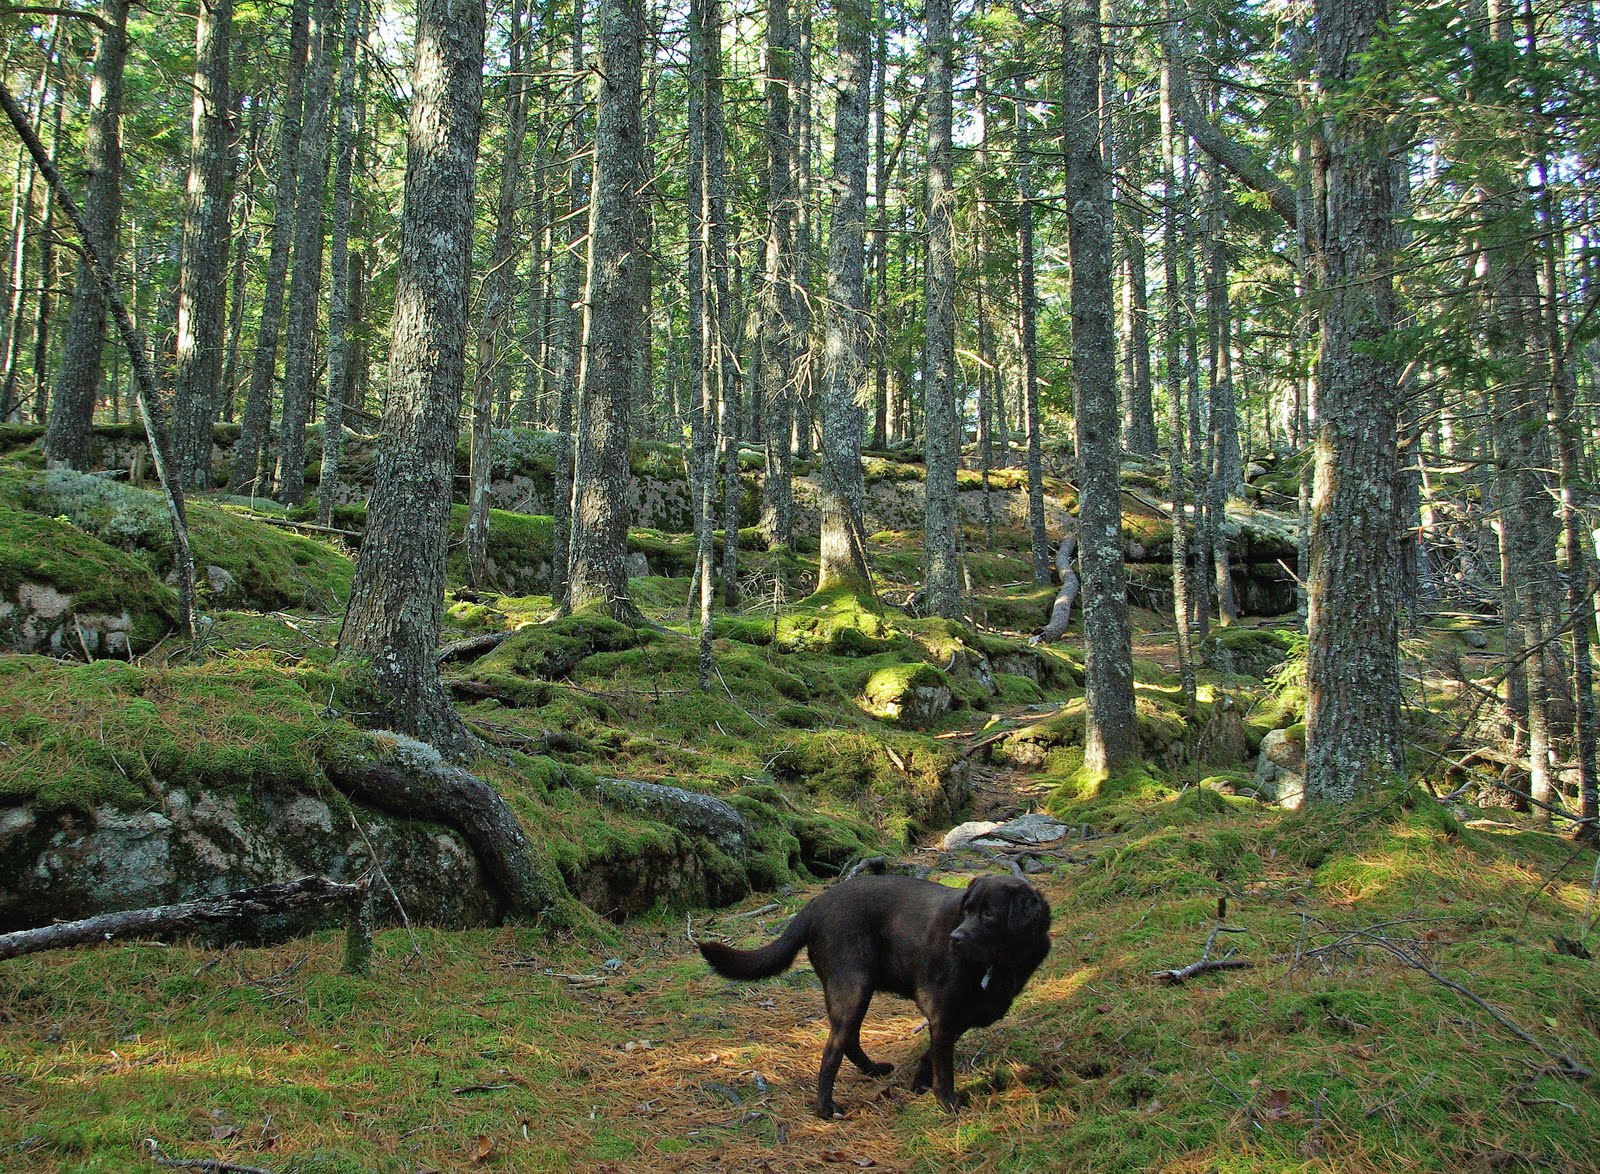 hiking near me allows dogs building materials bargain centerhiking near me allows dogs